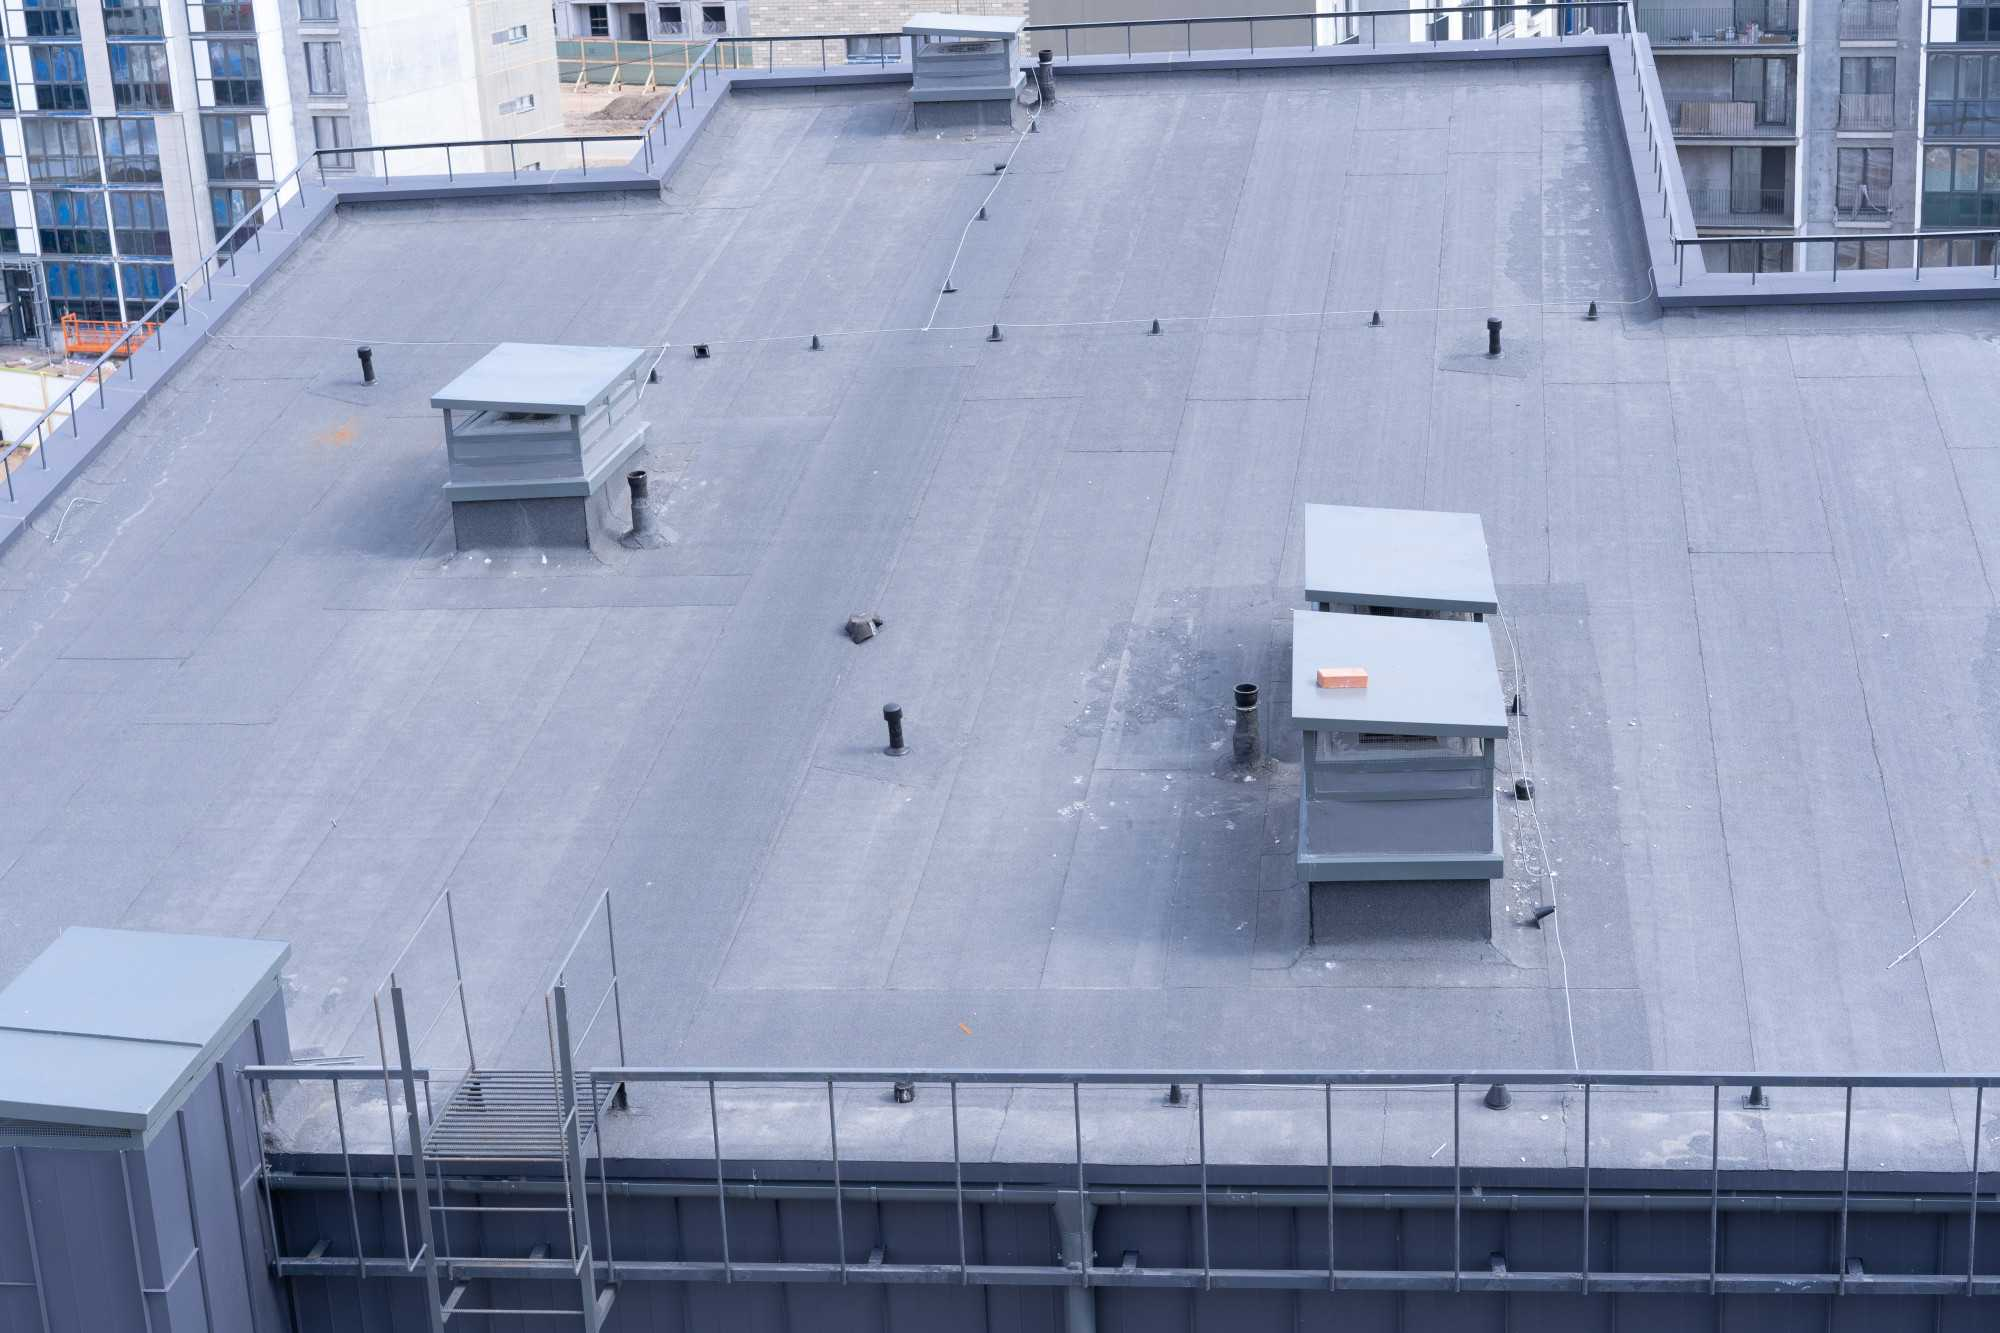 How Much Could Cool Roofing Save on Your Building's Energy Costs?